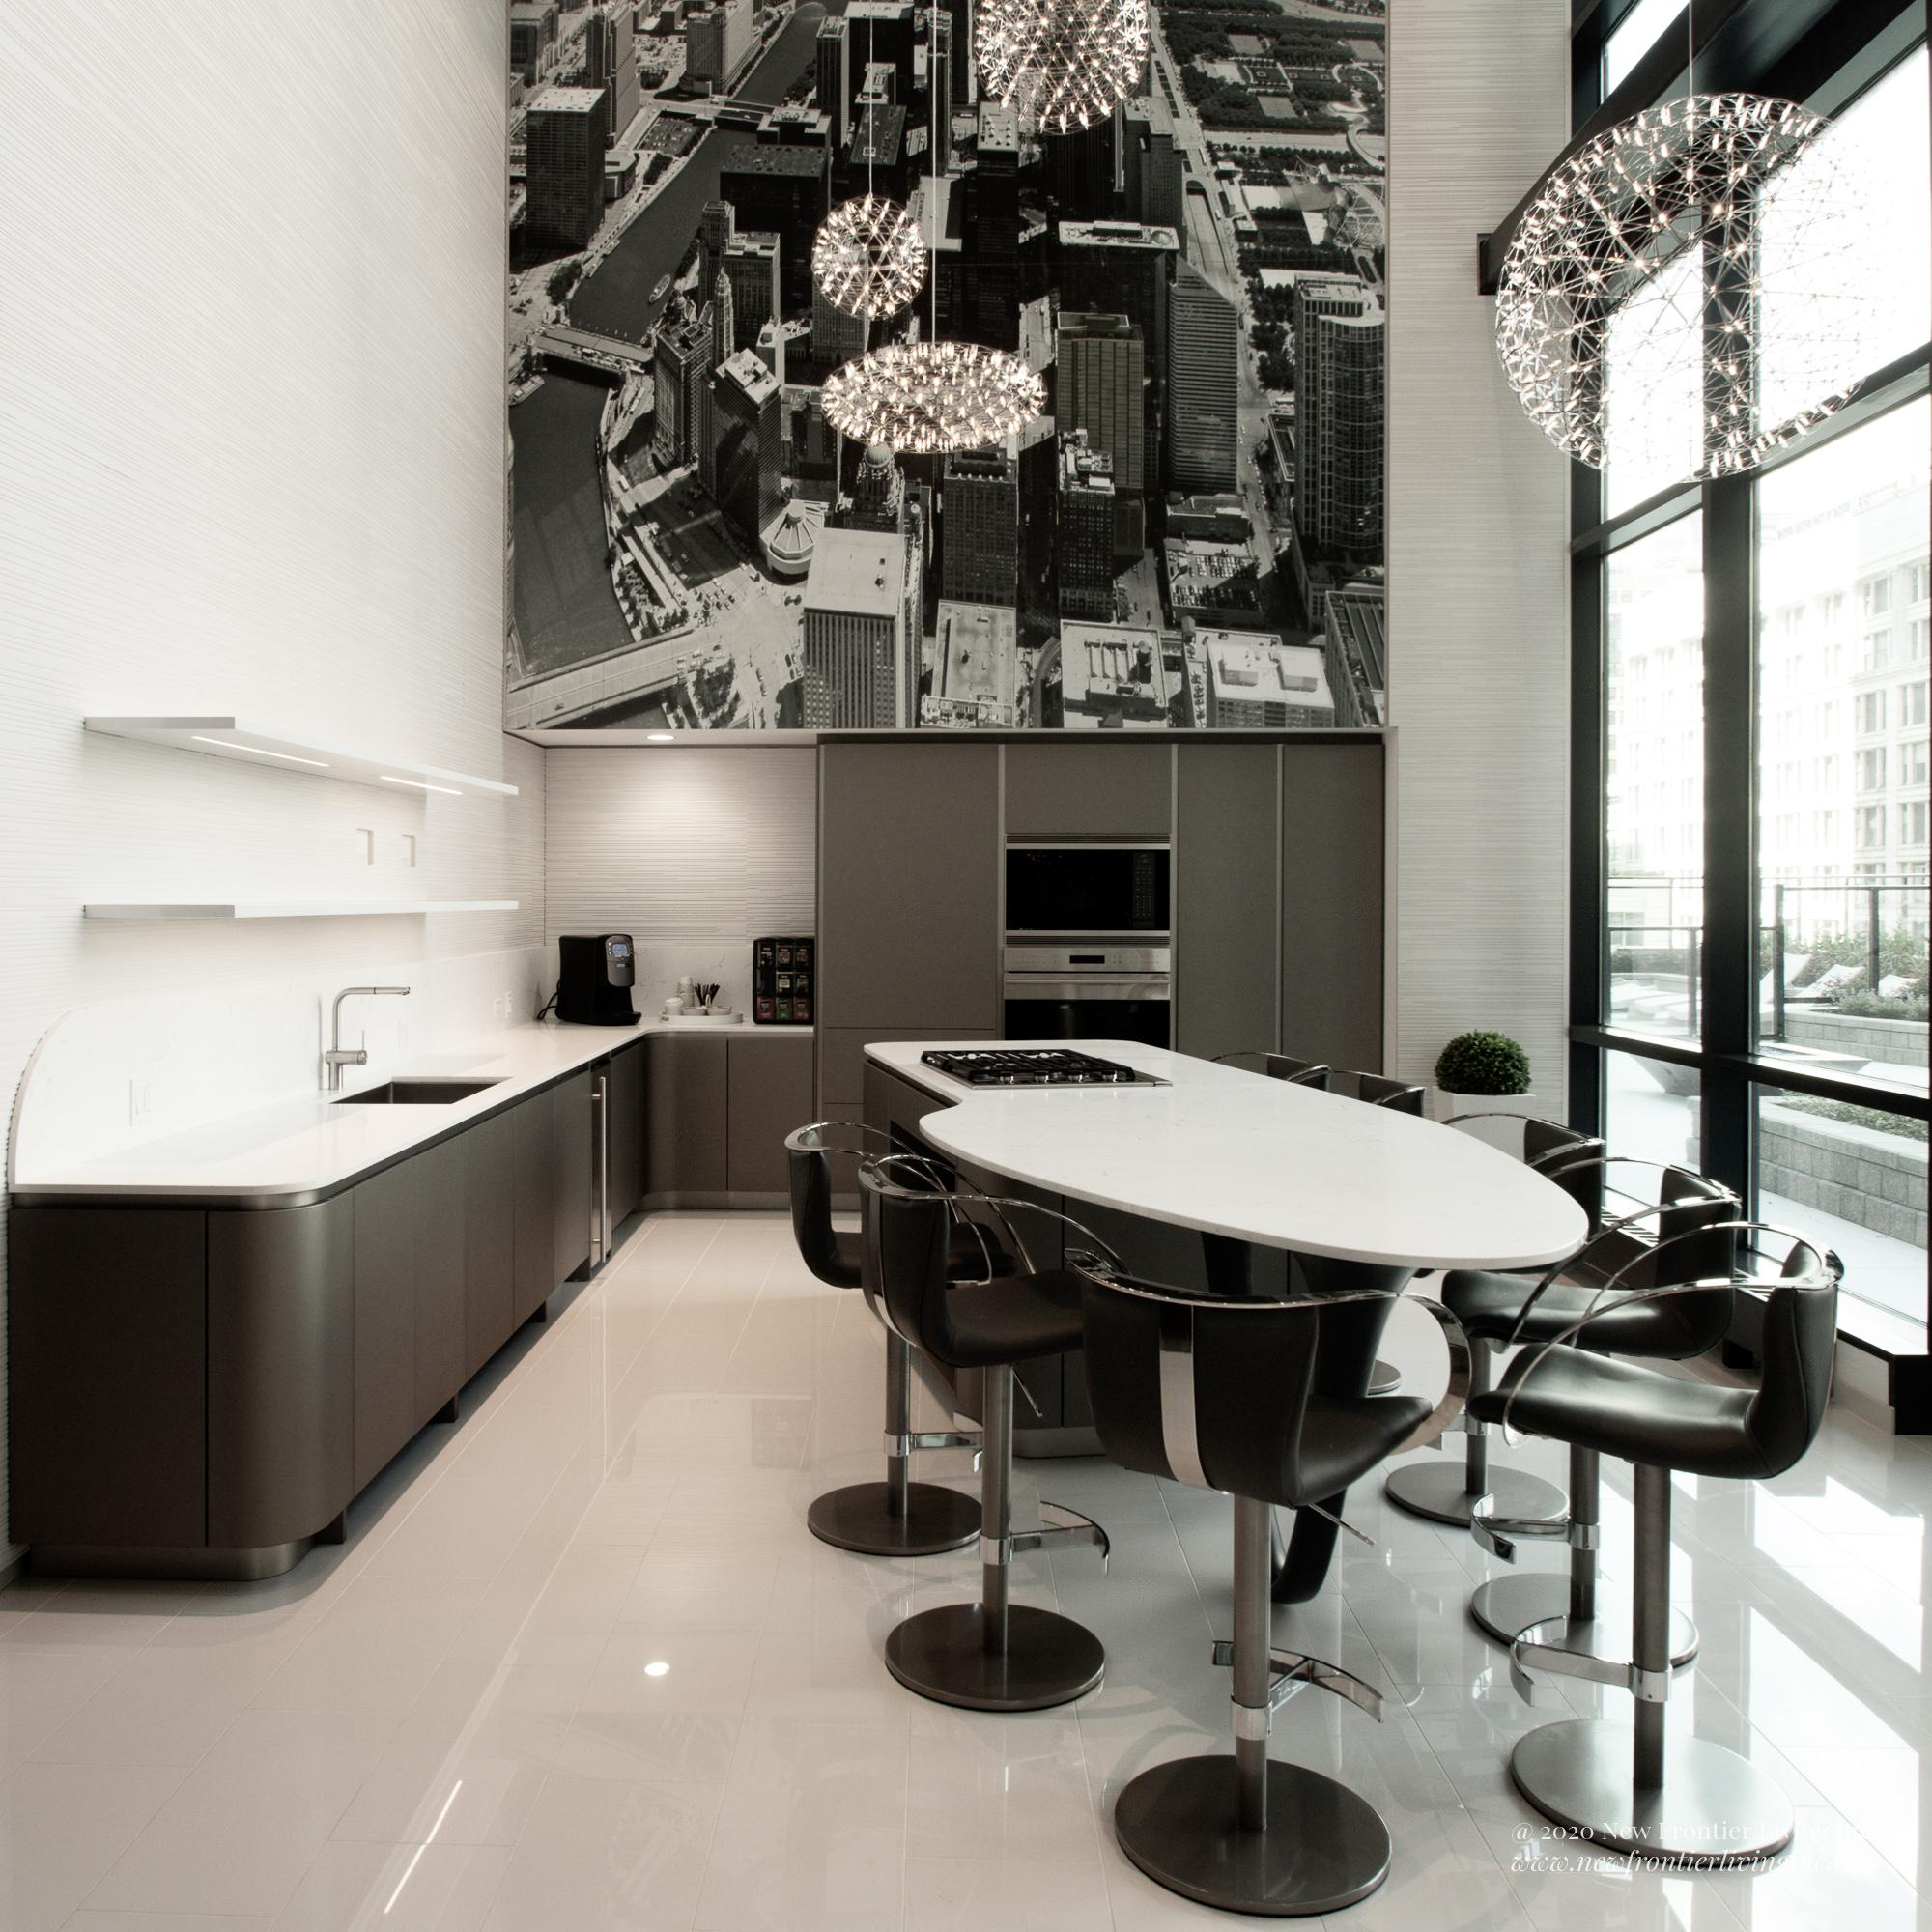 Large view of a black kitchen with white countertops and island, hight ceiling, large view of the city painting overhead, many bar stools by the island